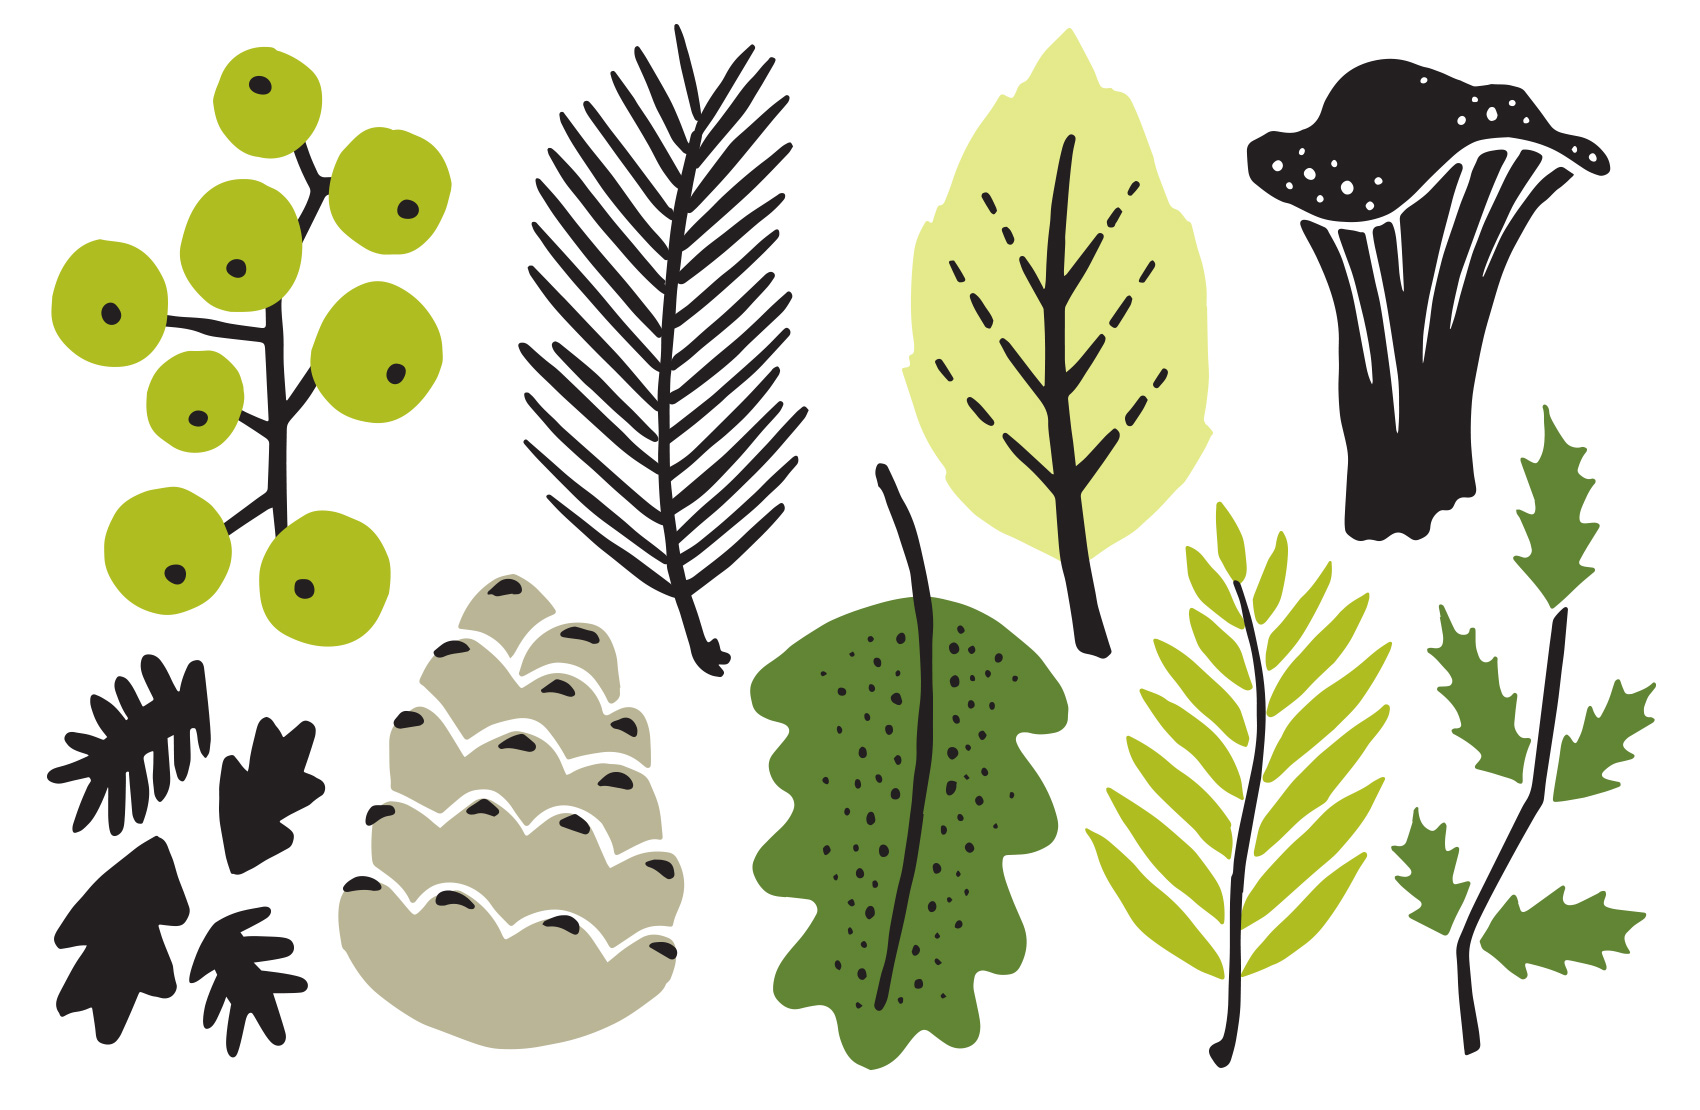 assortment of northwest inspired leaves and foliage